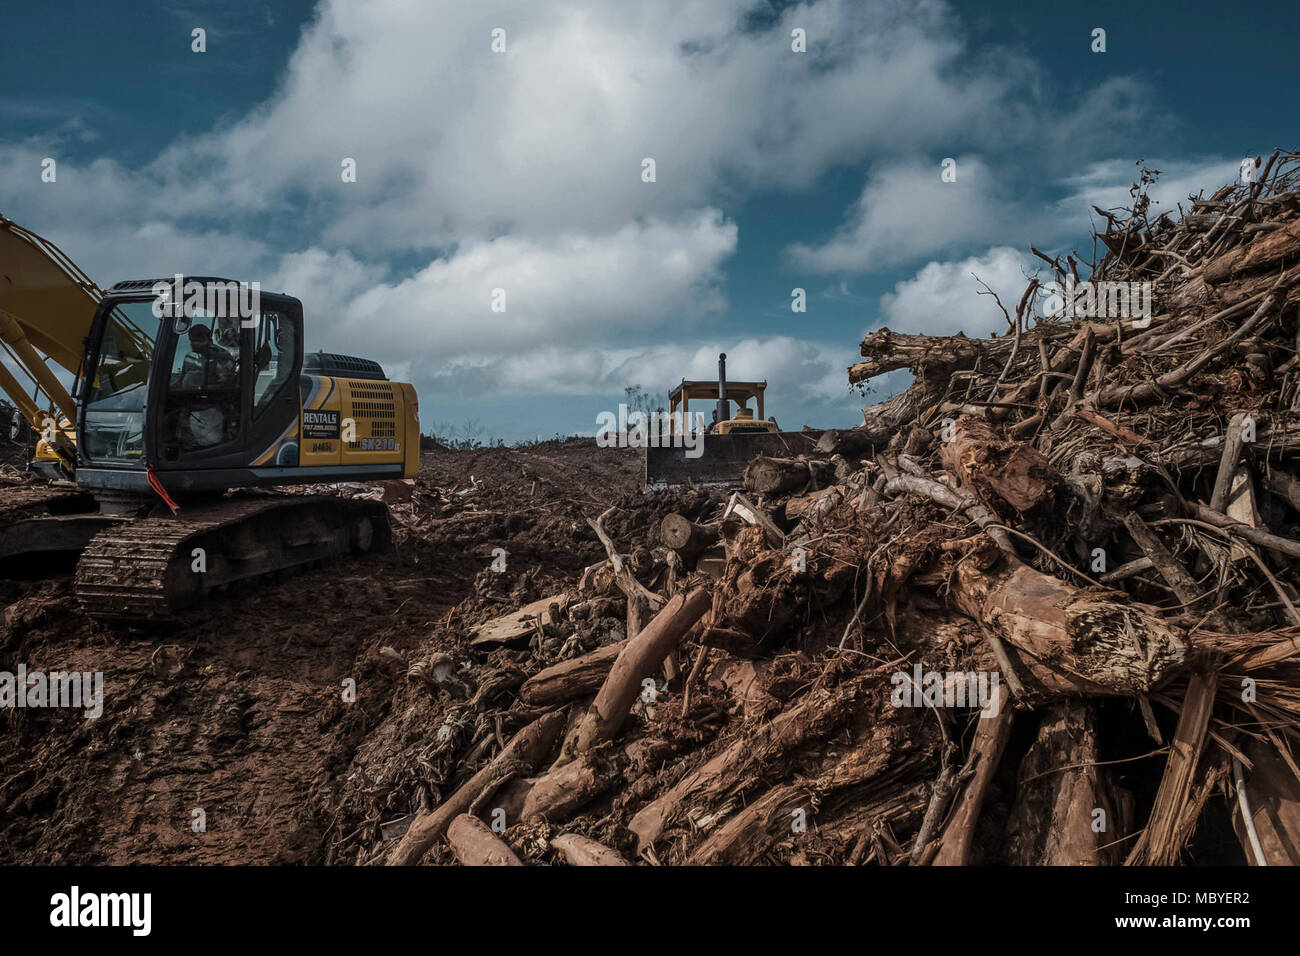 NARANJITO, Puerto Rico, Jan. 8, 2018--Employees of the municipality of Naranjito collect debris to be taken to the regional landfill located in the municipality of Toa Baja. - Stock Image